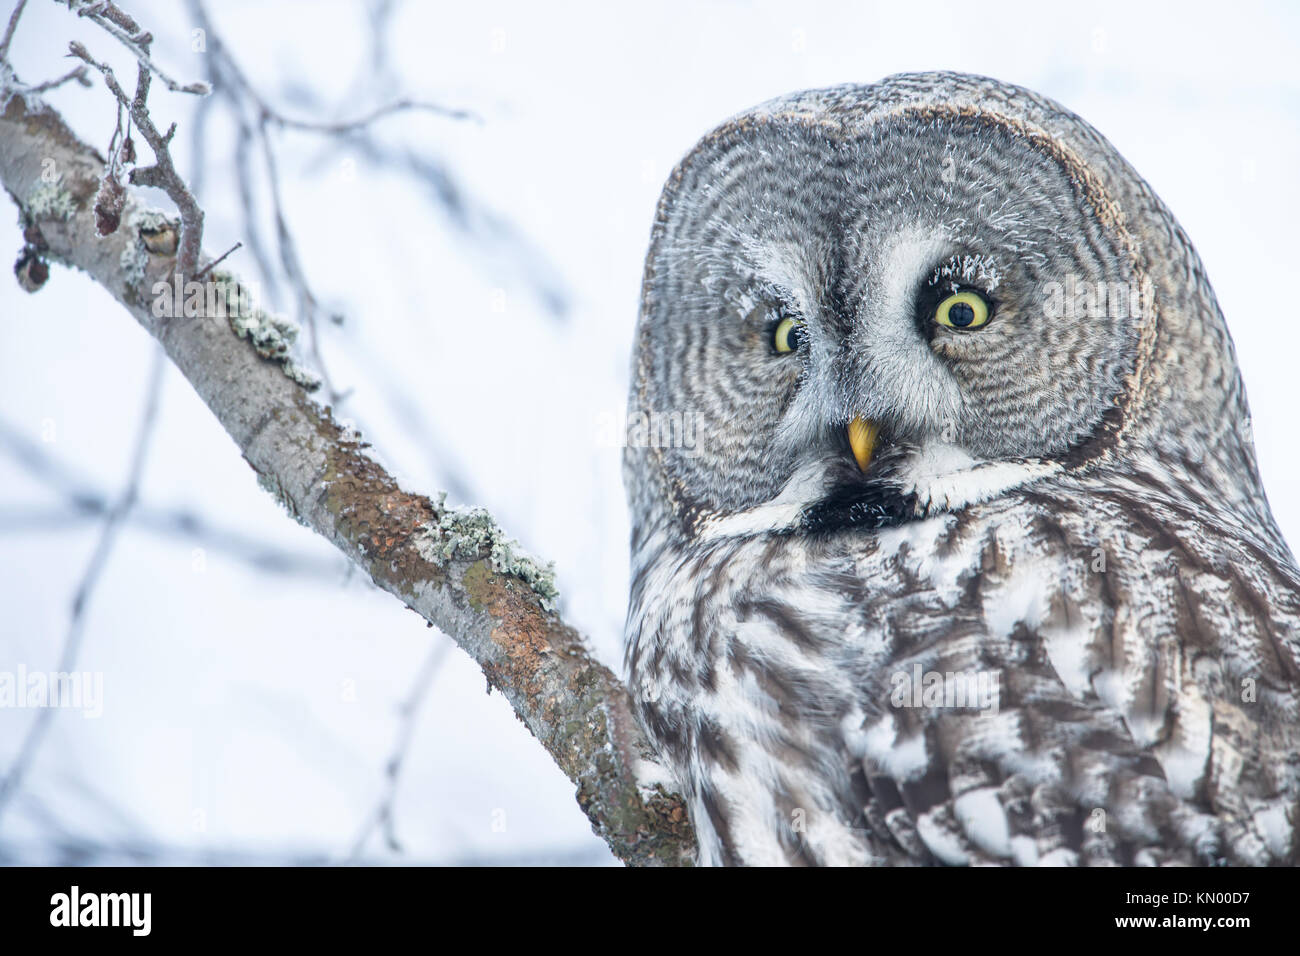 Close-up of a perching great grey owl in Finland, winter - Stock Image